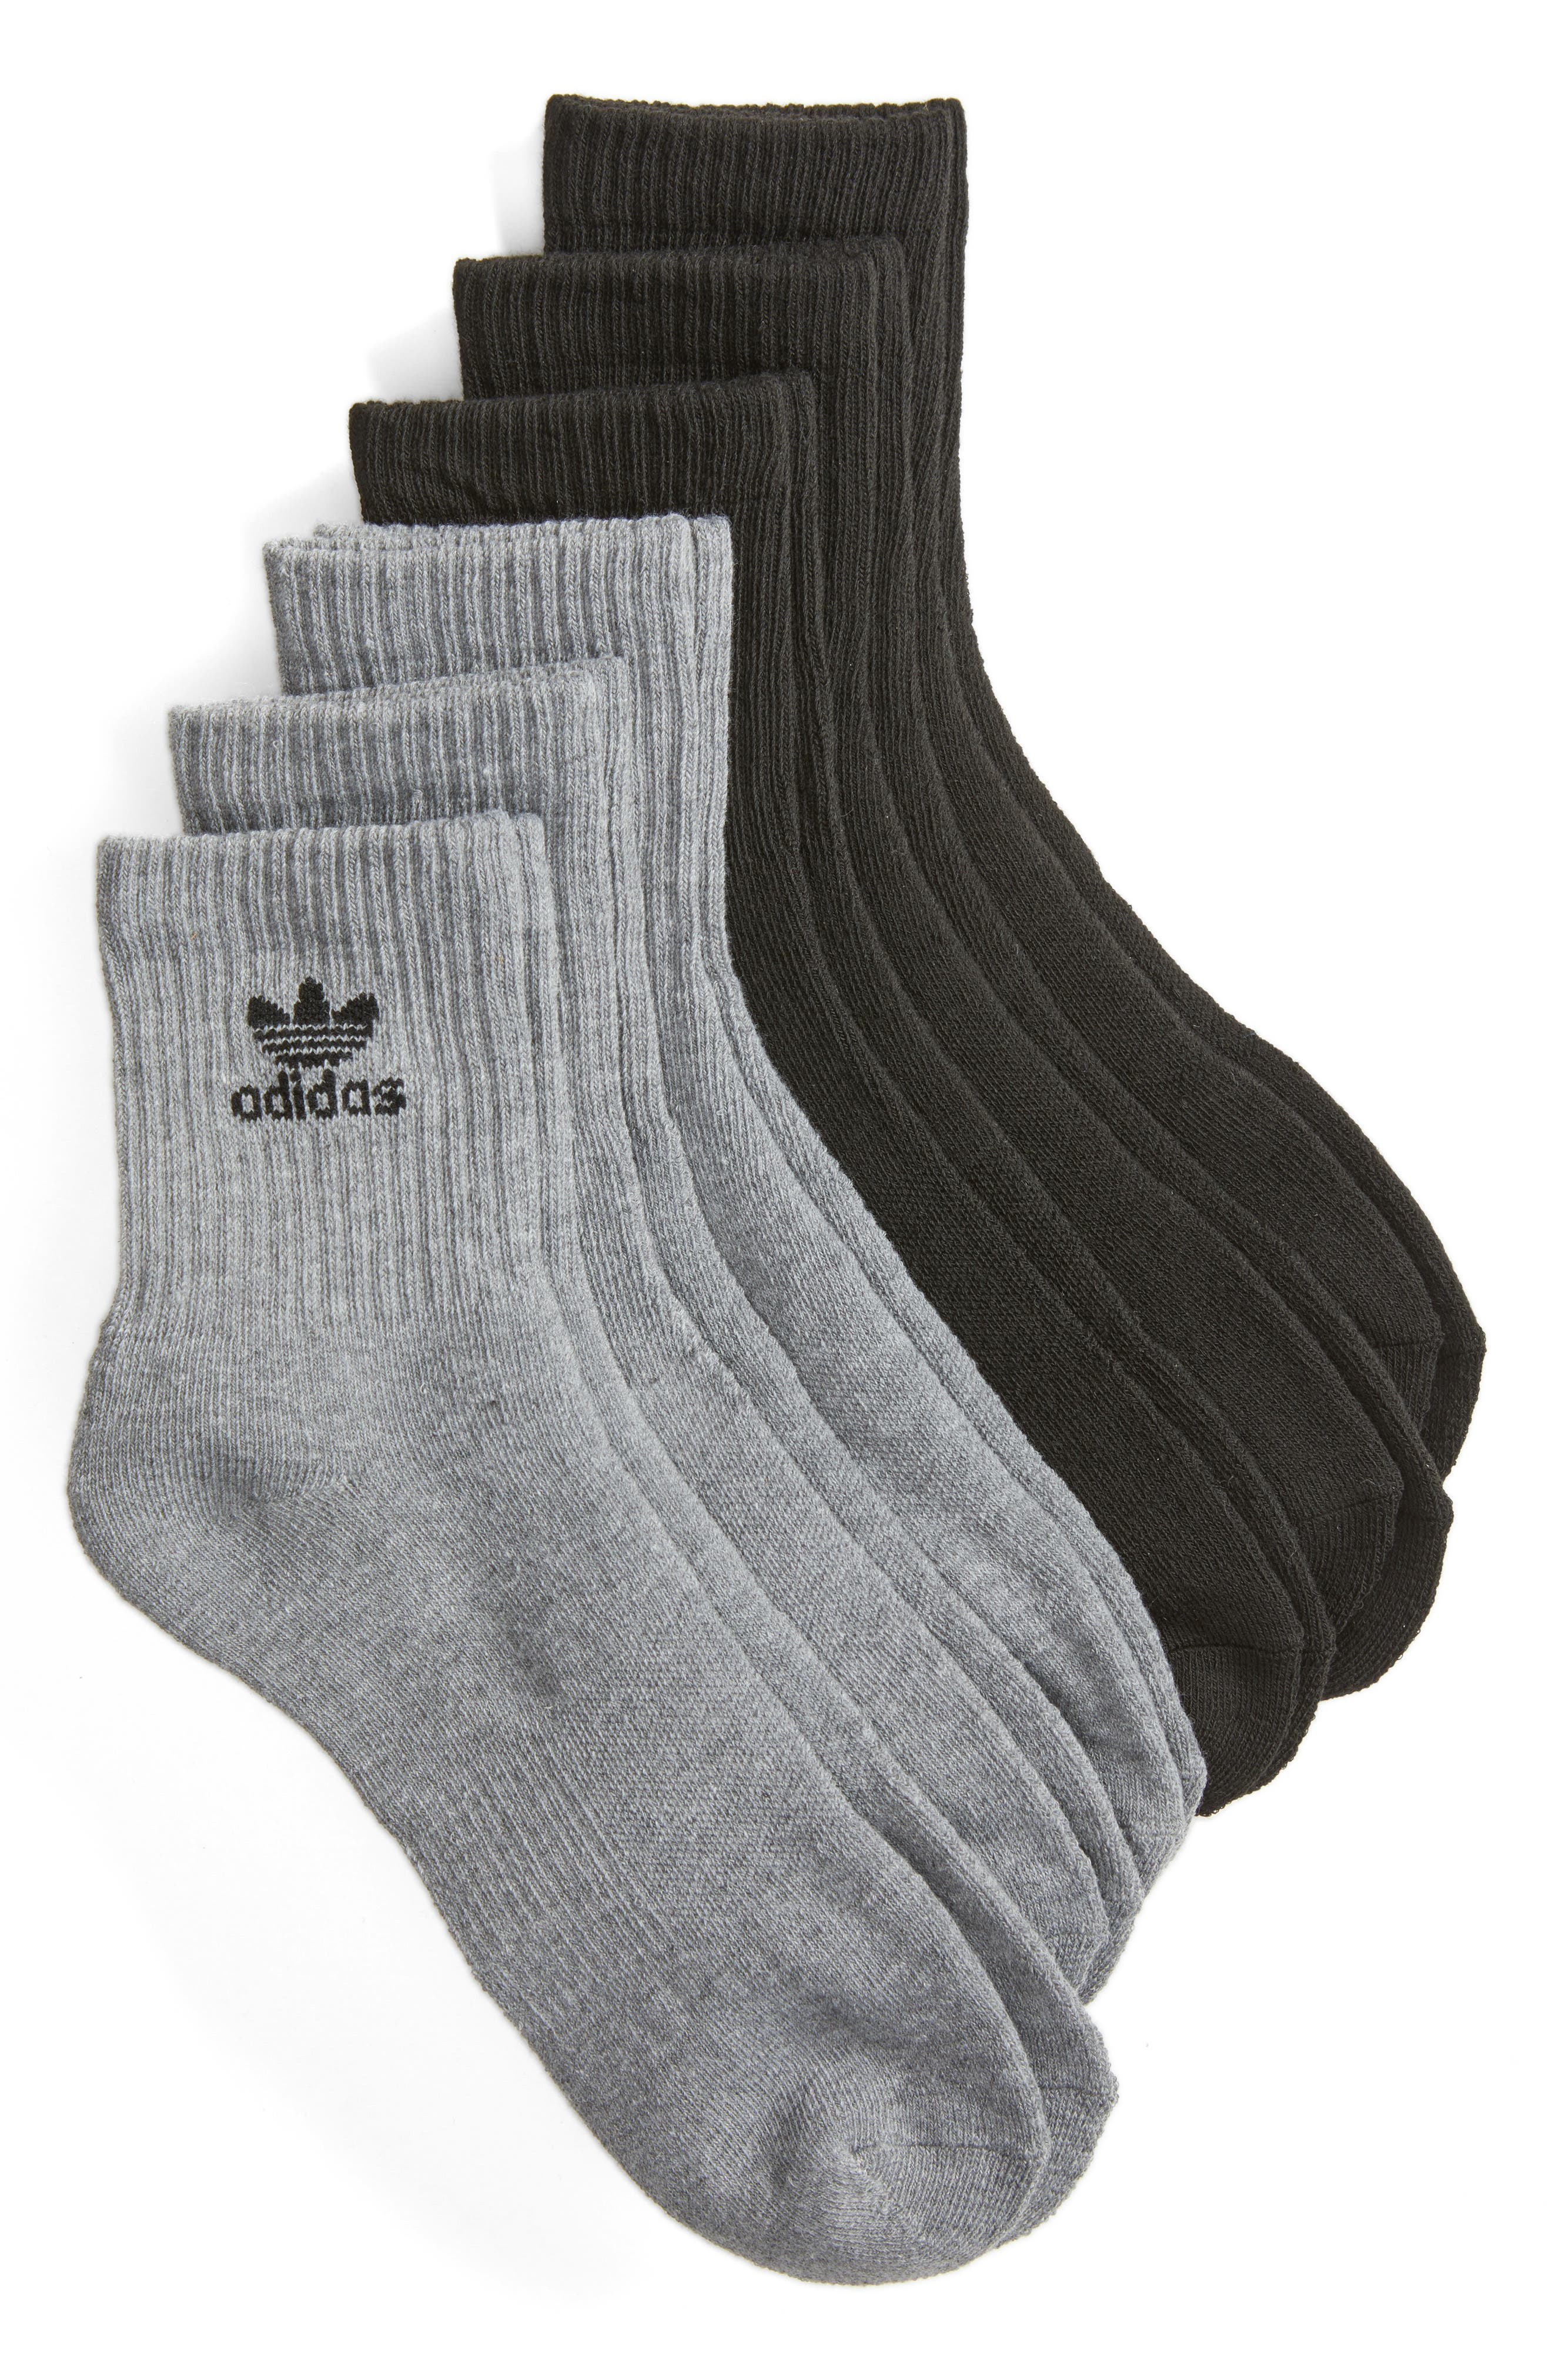 adidas Originals Trefoil 6-Pack Quarter Socks